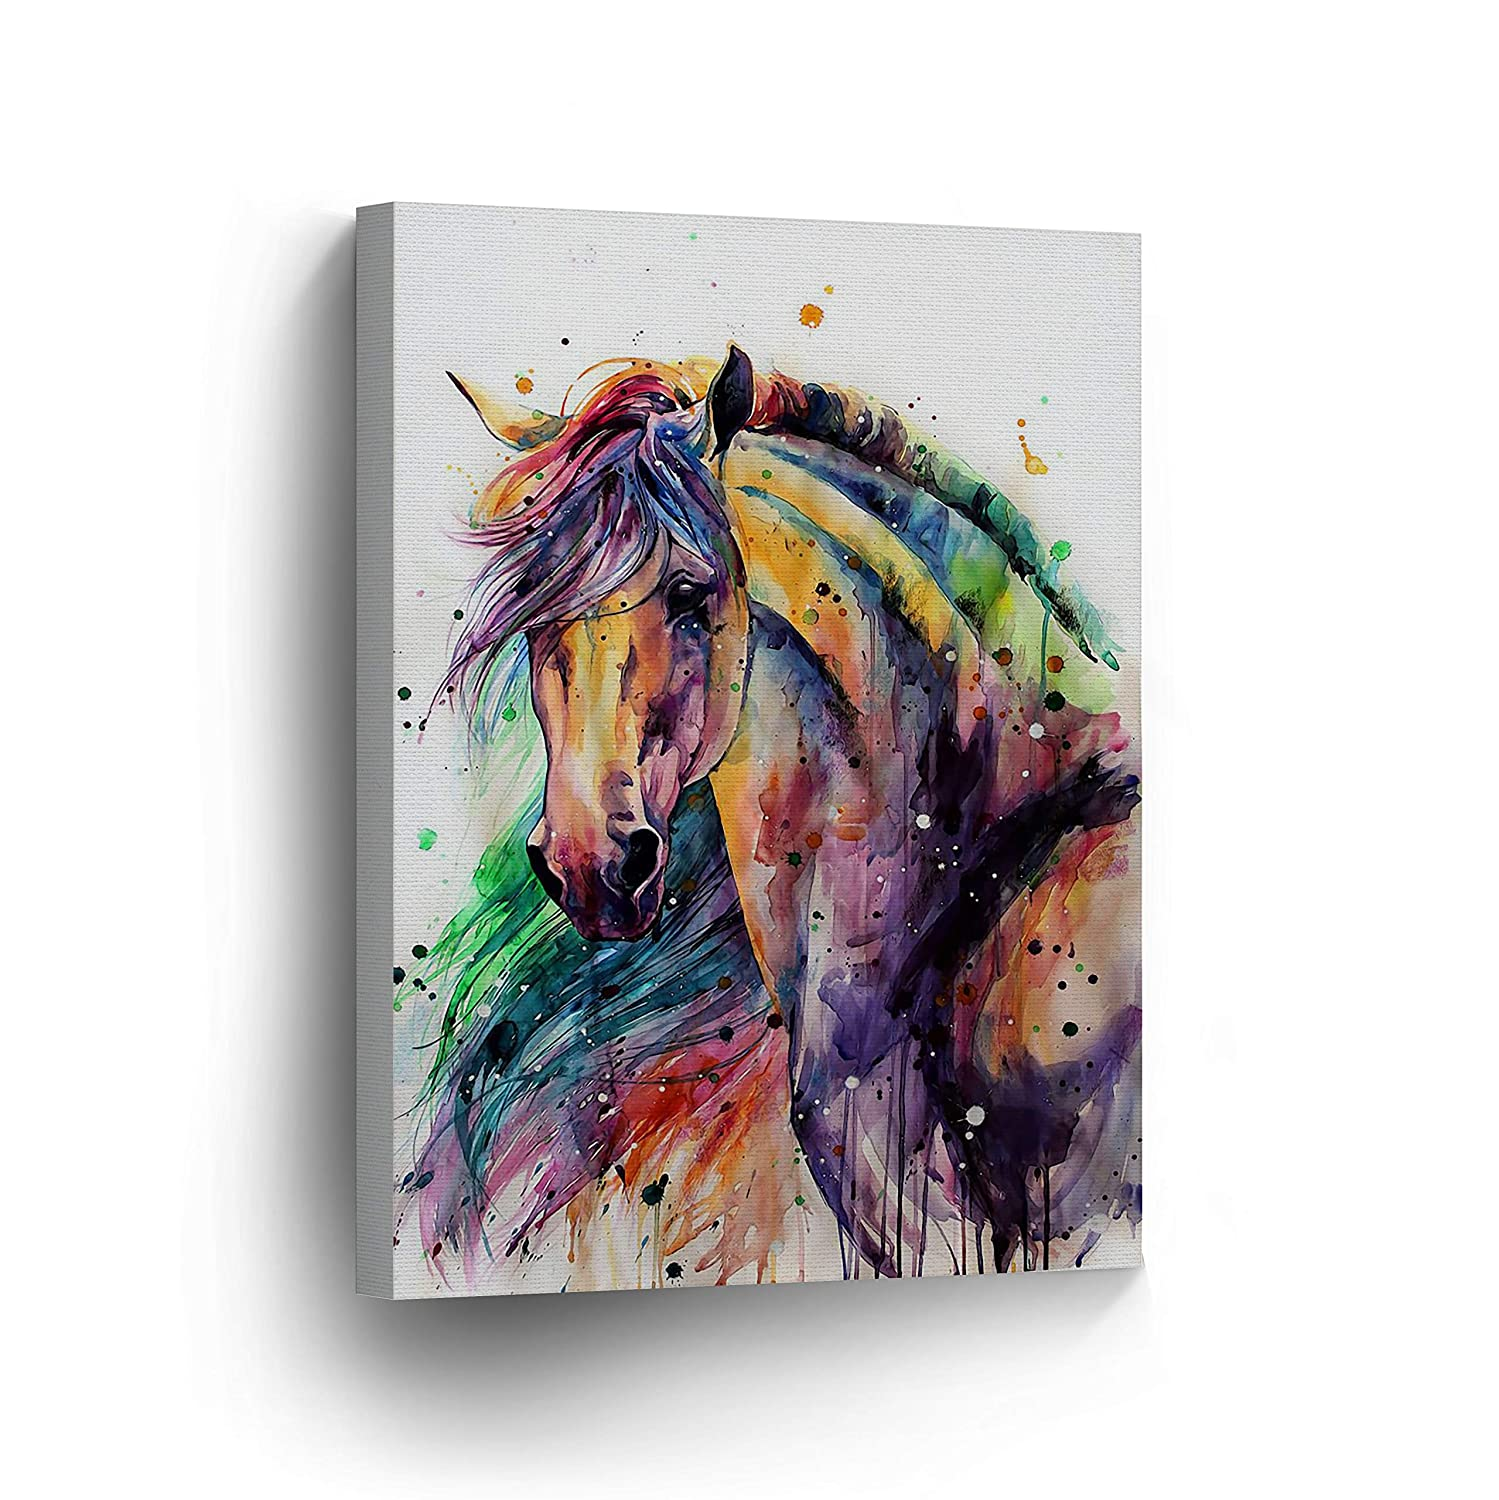 07c1ac83a31 Horse Watercolor Painting Colorful Rainbow Portrait Canvas Print Decorative Art  Wall Décor Artwork Wrapped Wood Stretcher Bars - Ready to Hang -%100 ...